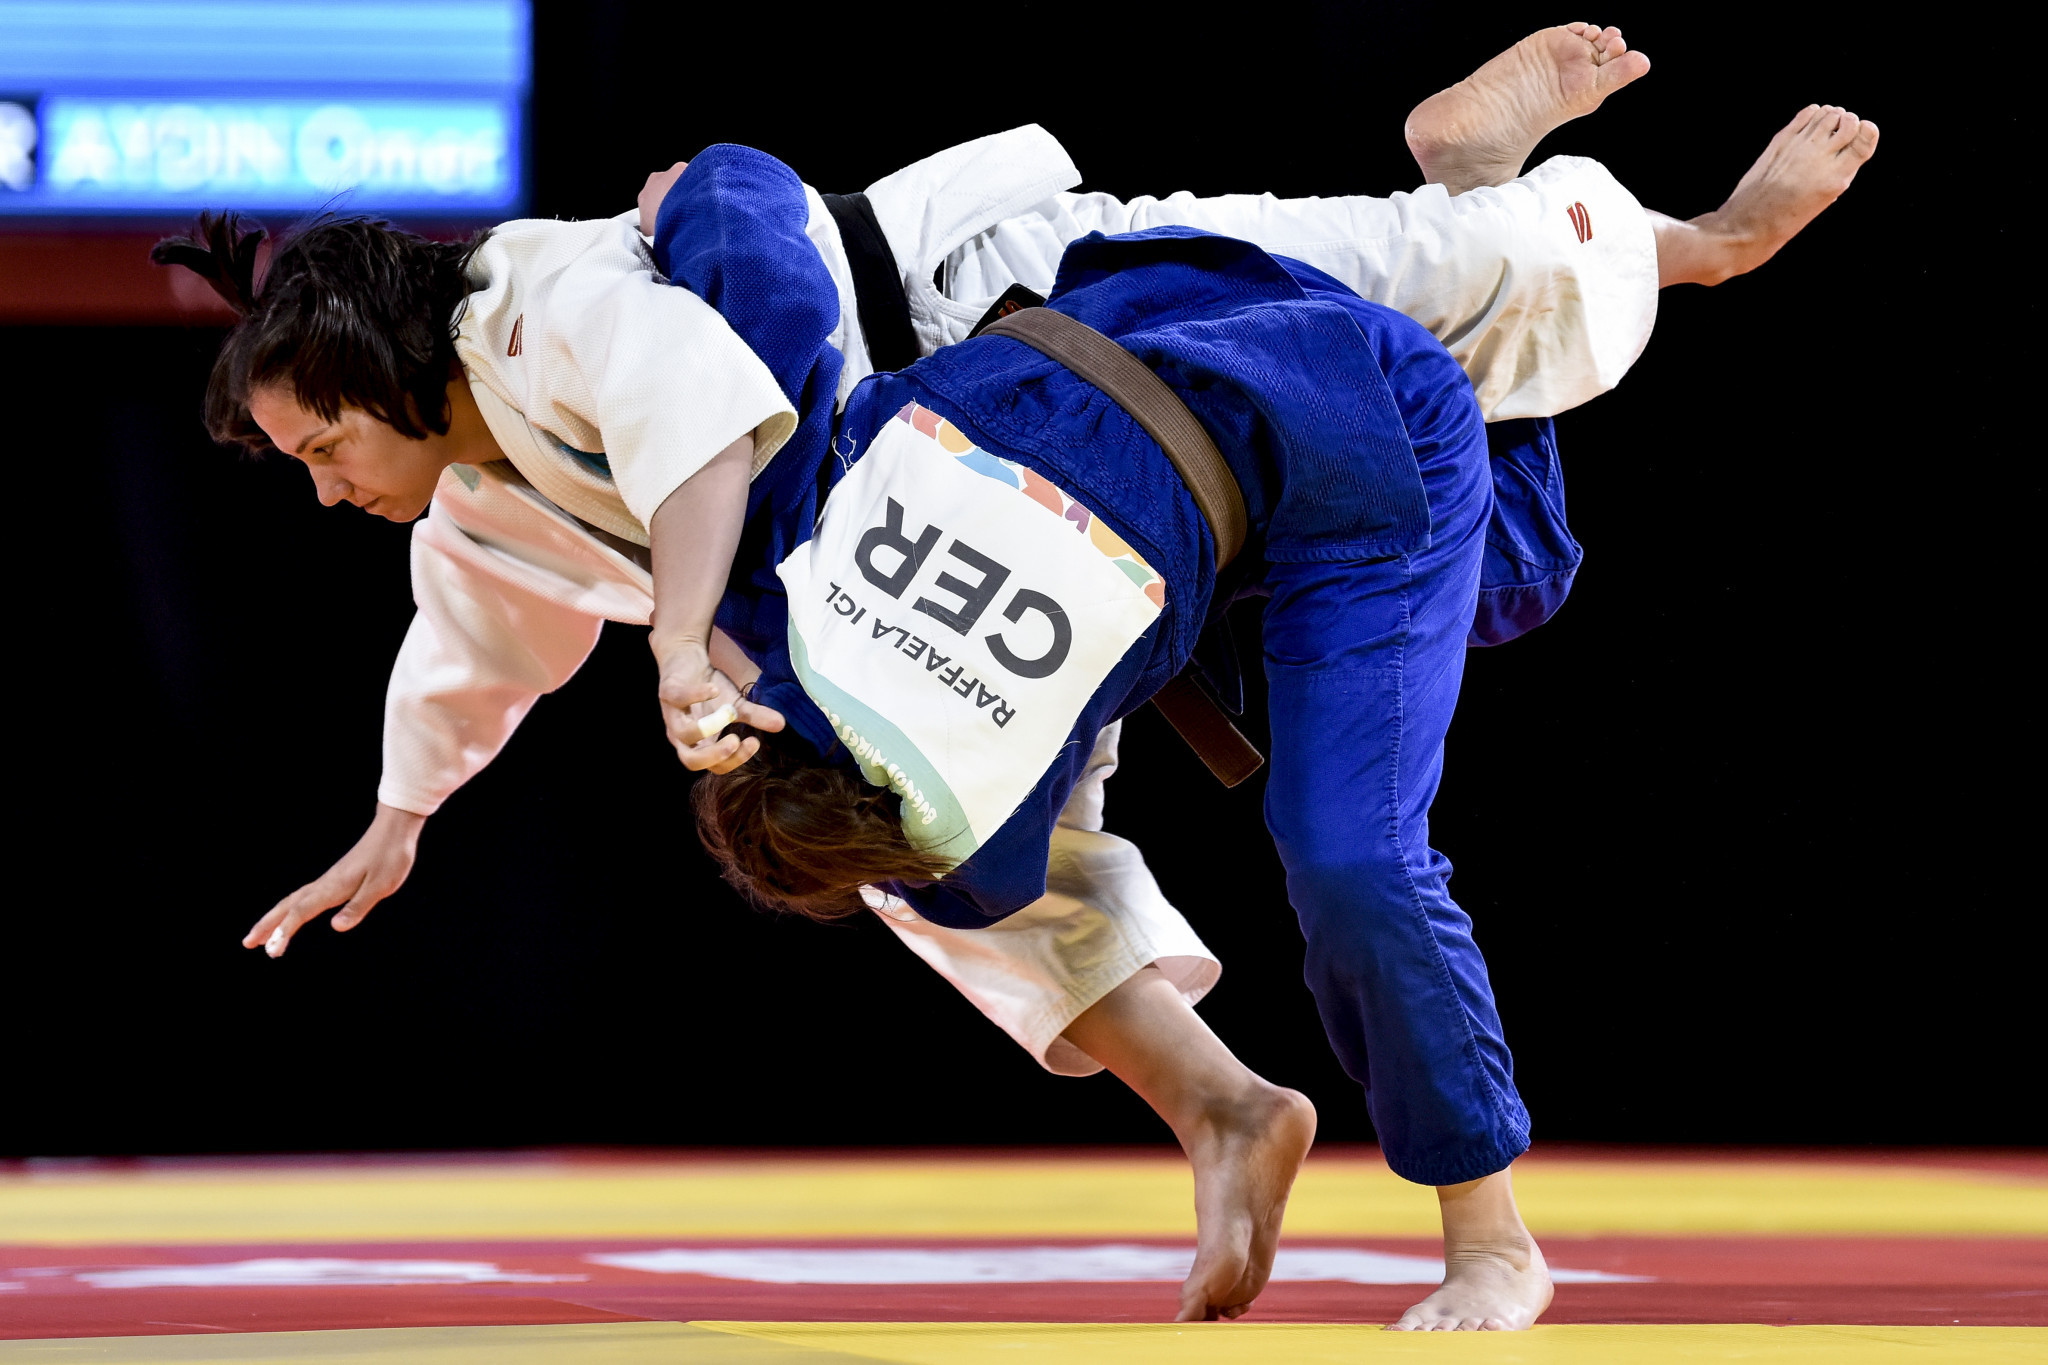 Germany university online tournament backed by German Judo Association